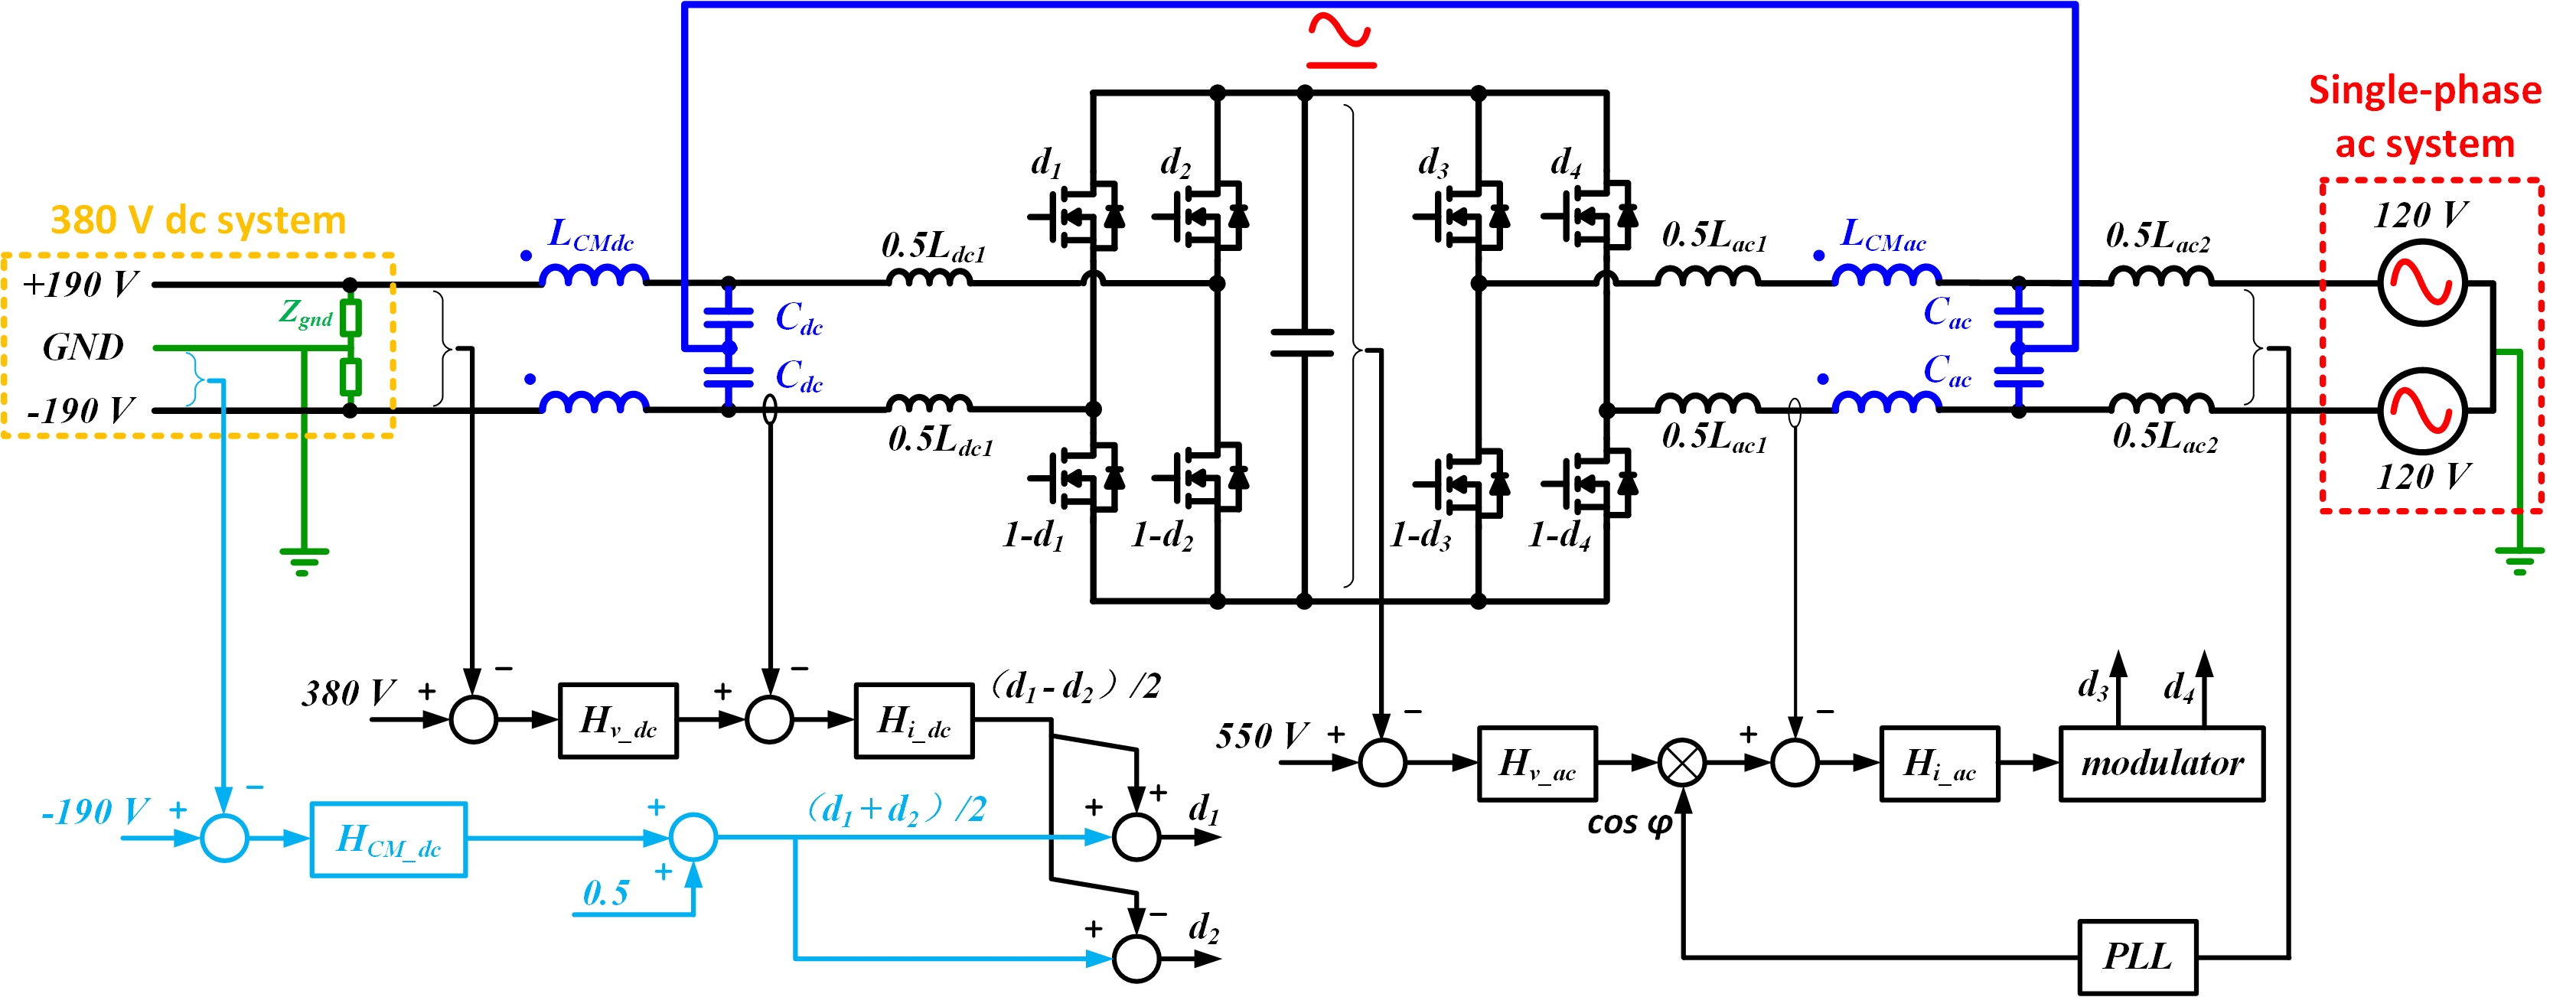 Fm Y Fl R Yma Rect besides D Fig also Hqdefault together with Make An Ac Dc Converter Step as well Newelectrical System Diagram Abc. on converter dc to ac inverter circuit diagram